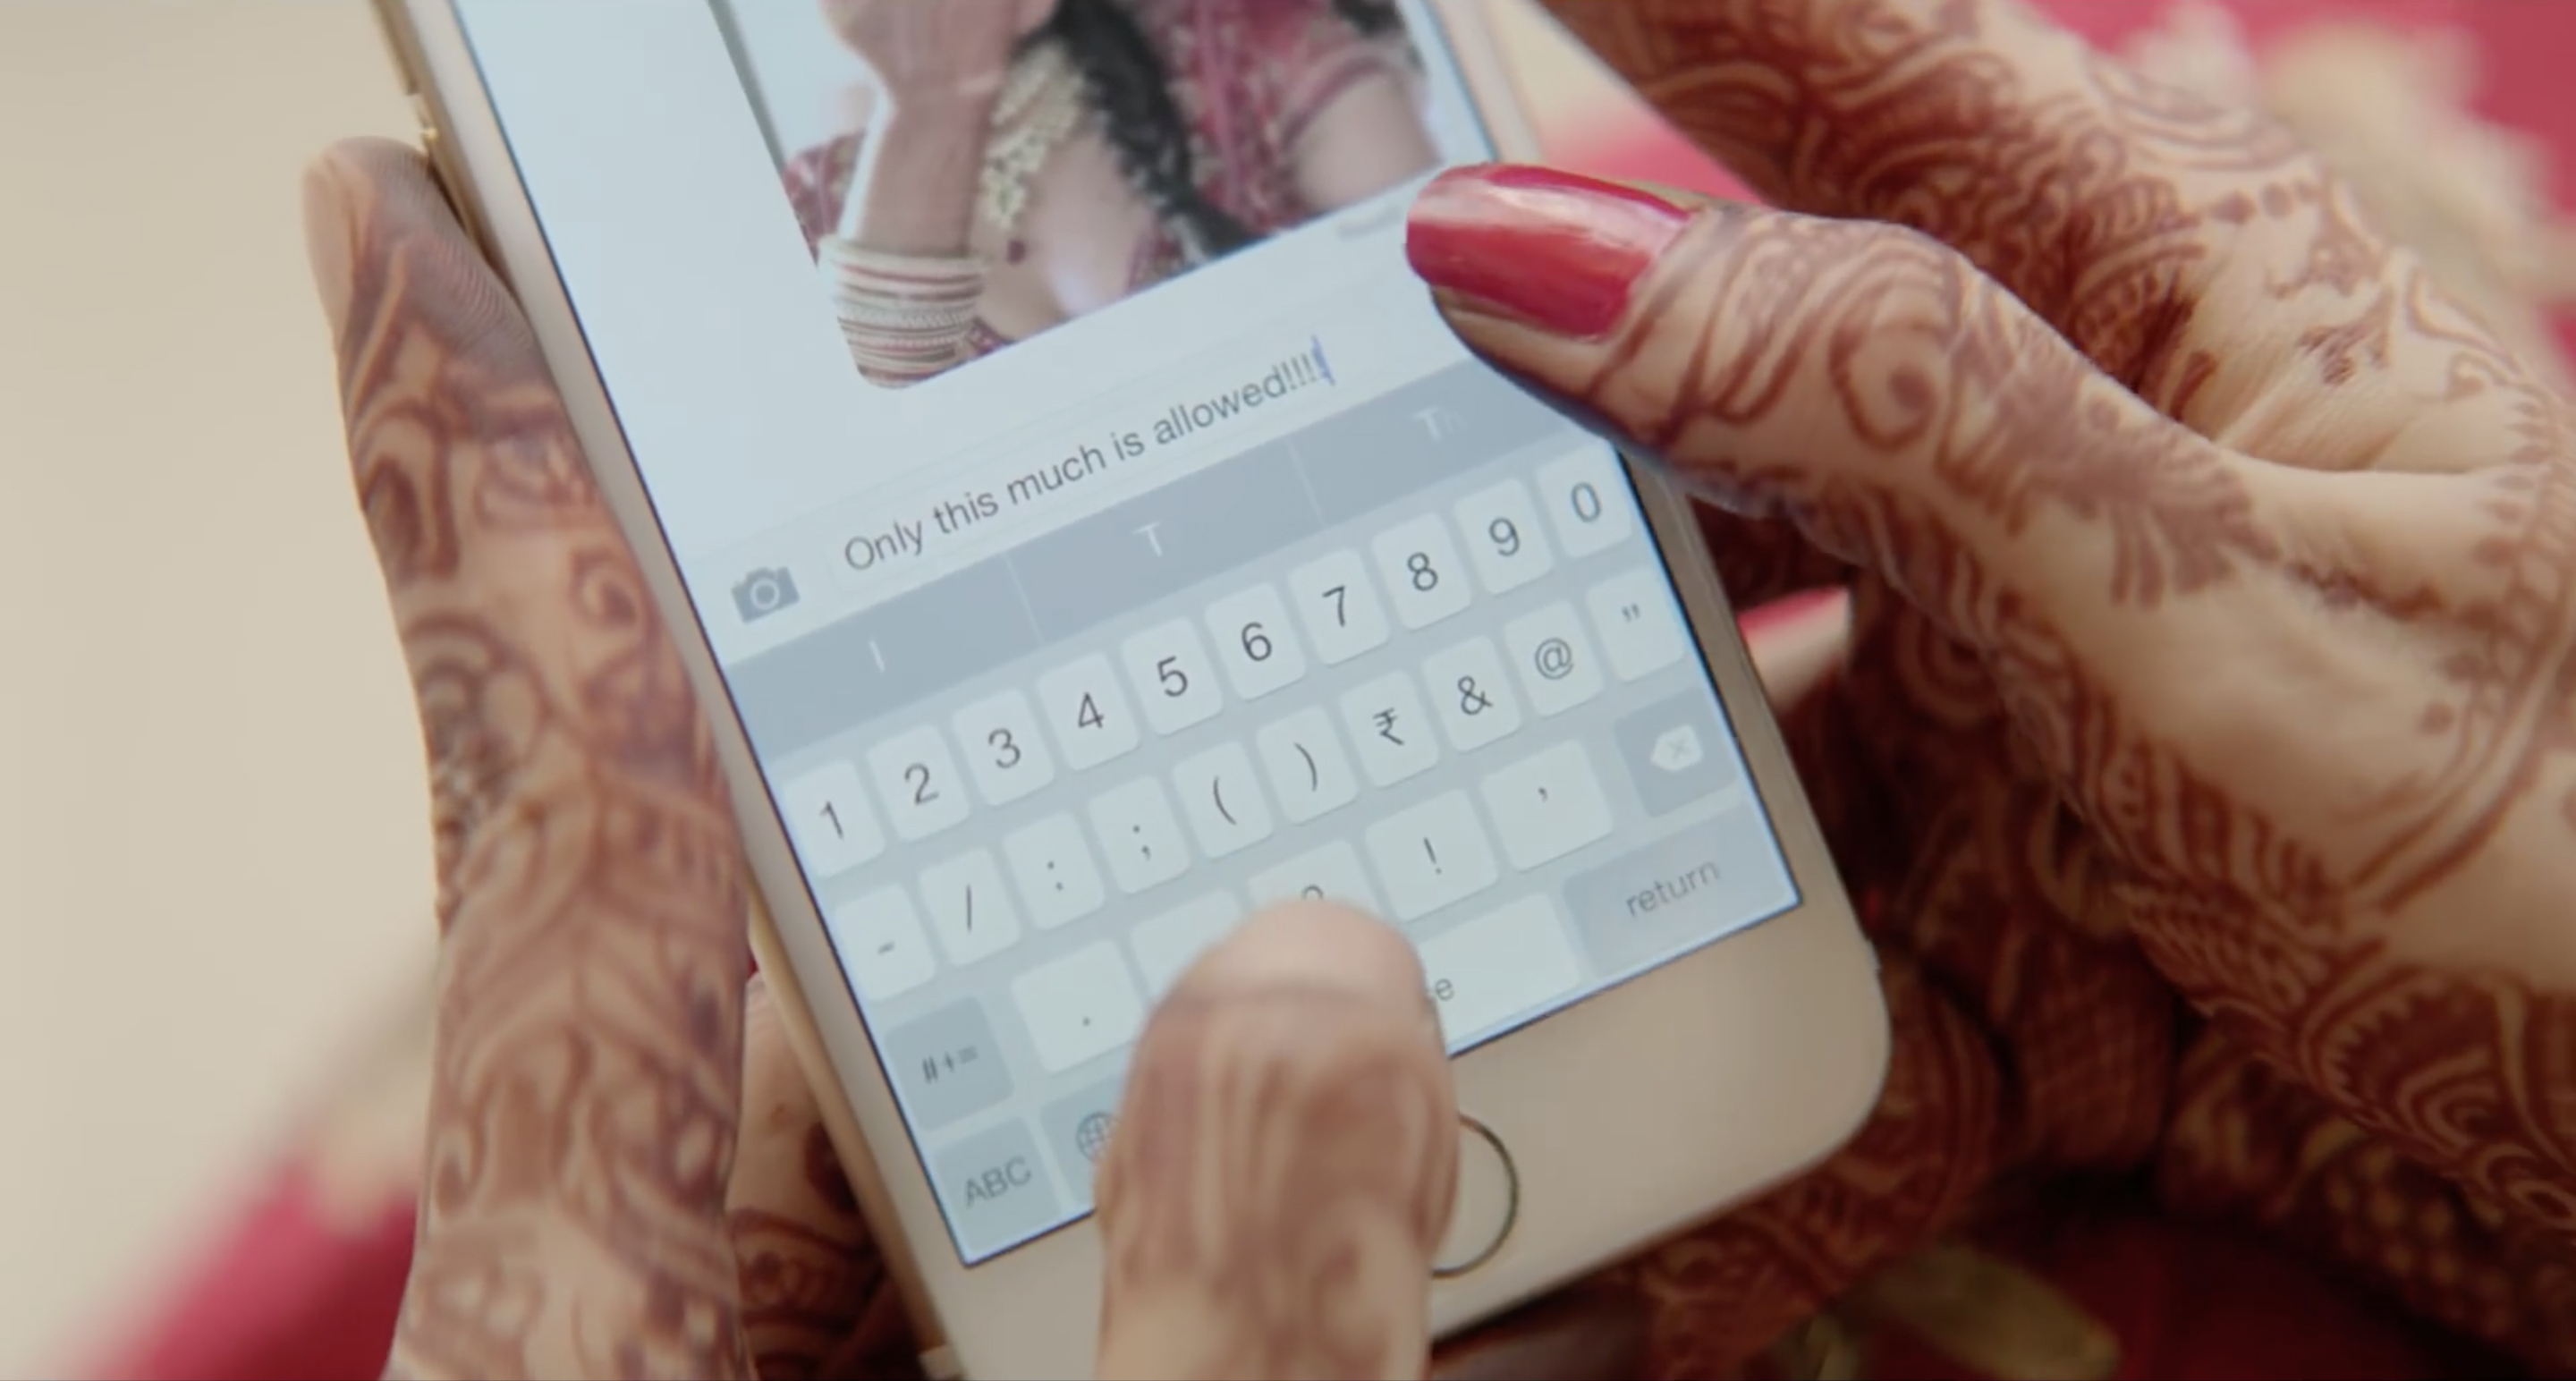 Apple iphone in india wedding ad the inspiration room iphone 6 india tvc with ingram micro publicscrutiny Choice Image